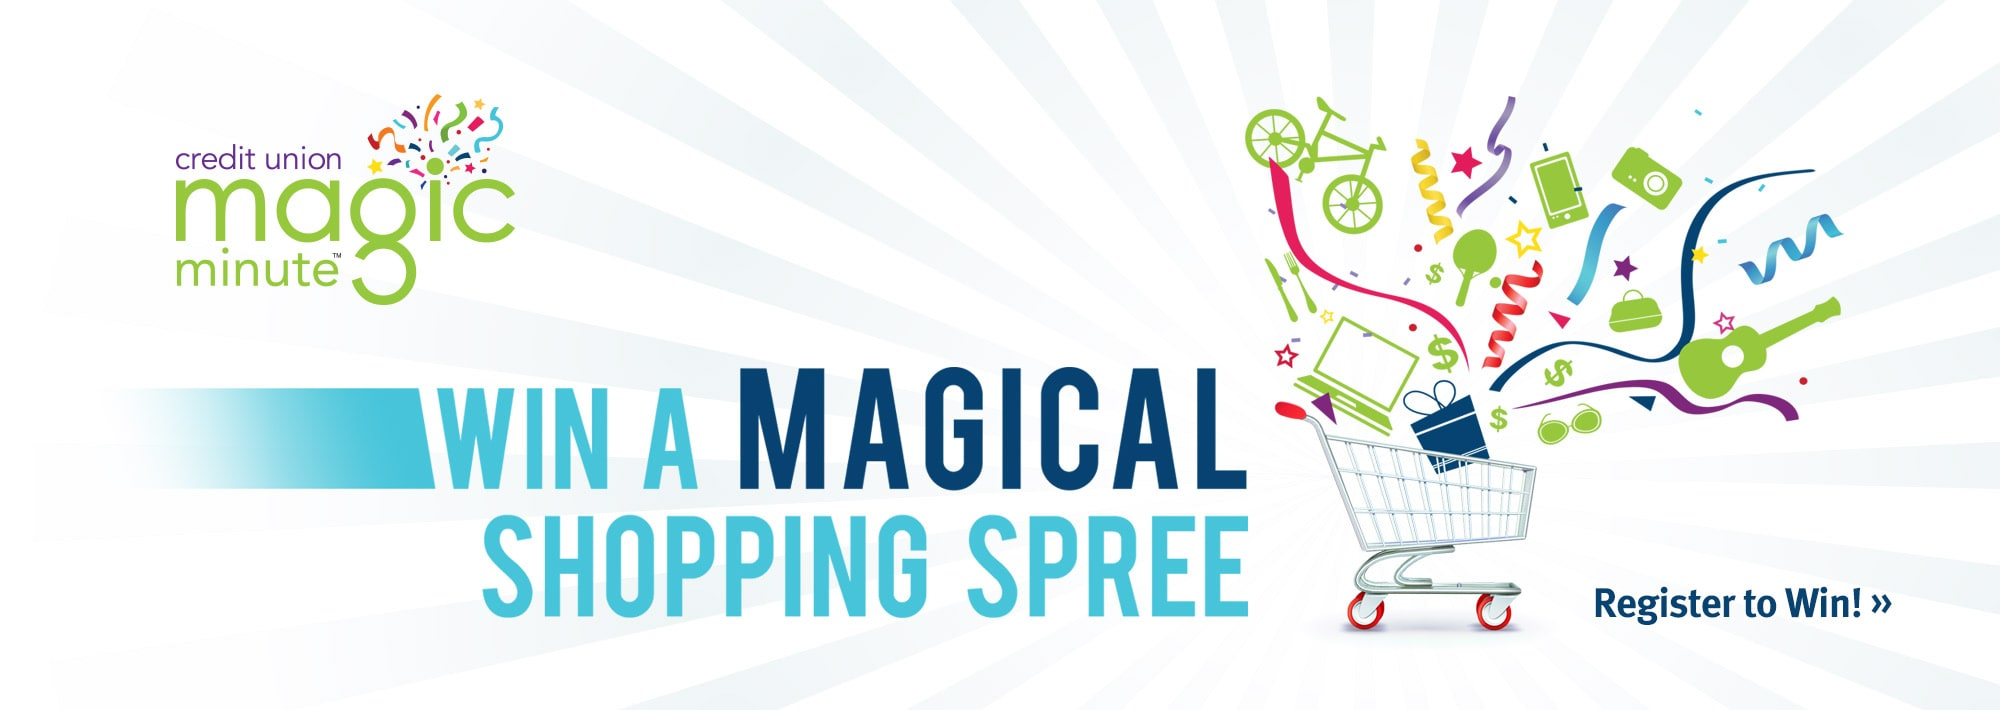 Credit Union Magic Minute. Win a Magic Shopping Spree!